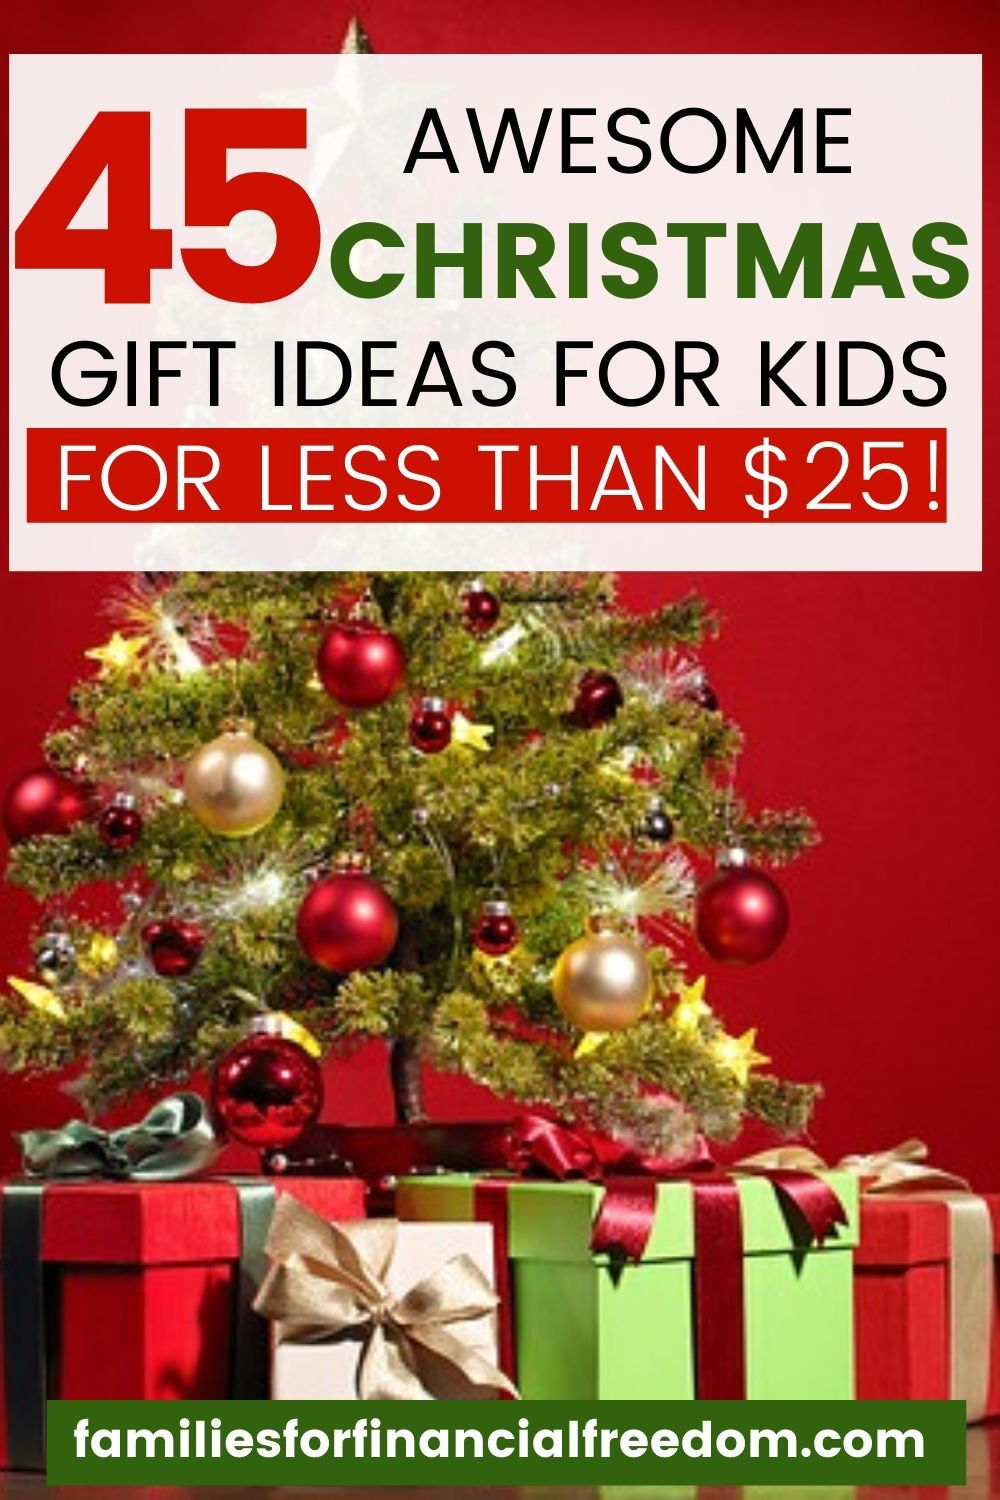 45 Awesome Christmas Gifts For Kids For Less Than 25 In 2020 Christmas Gifts For Kids Cheap Kids Christmas Gifts Budget Christmas Gifts